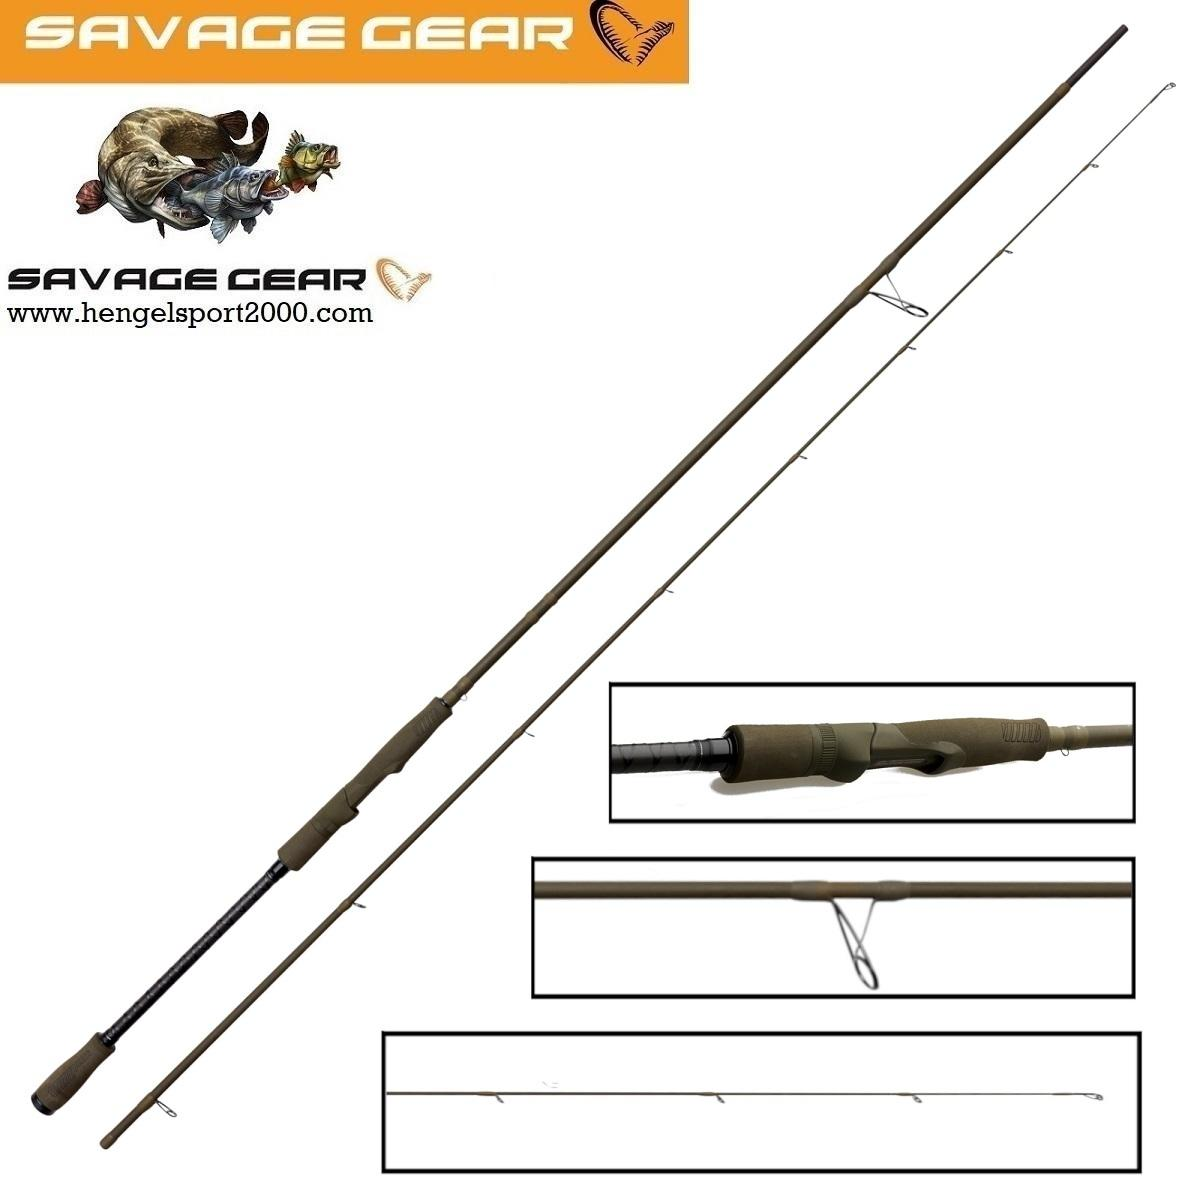 Savage Gear SG4 Power Game Rod 259 cm 80 - 150 gram